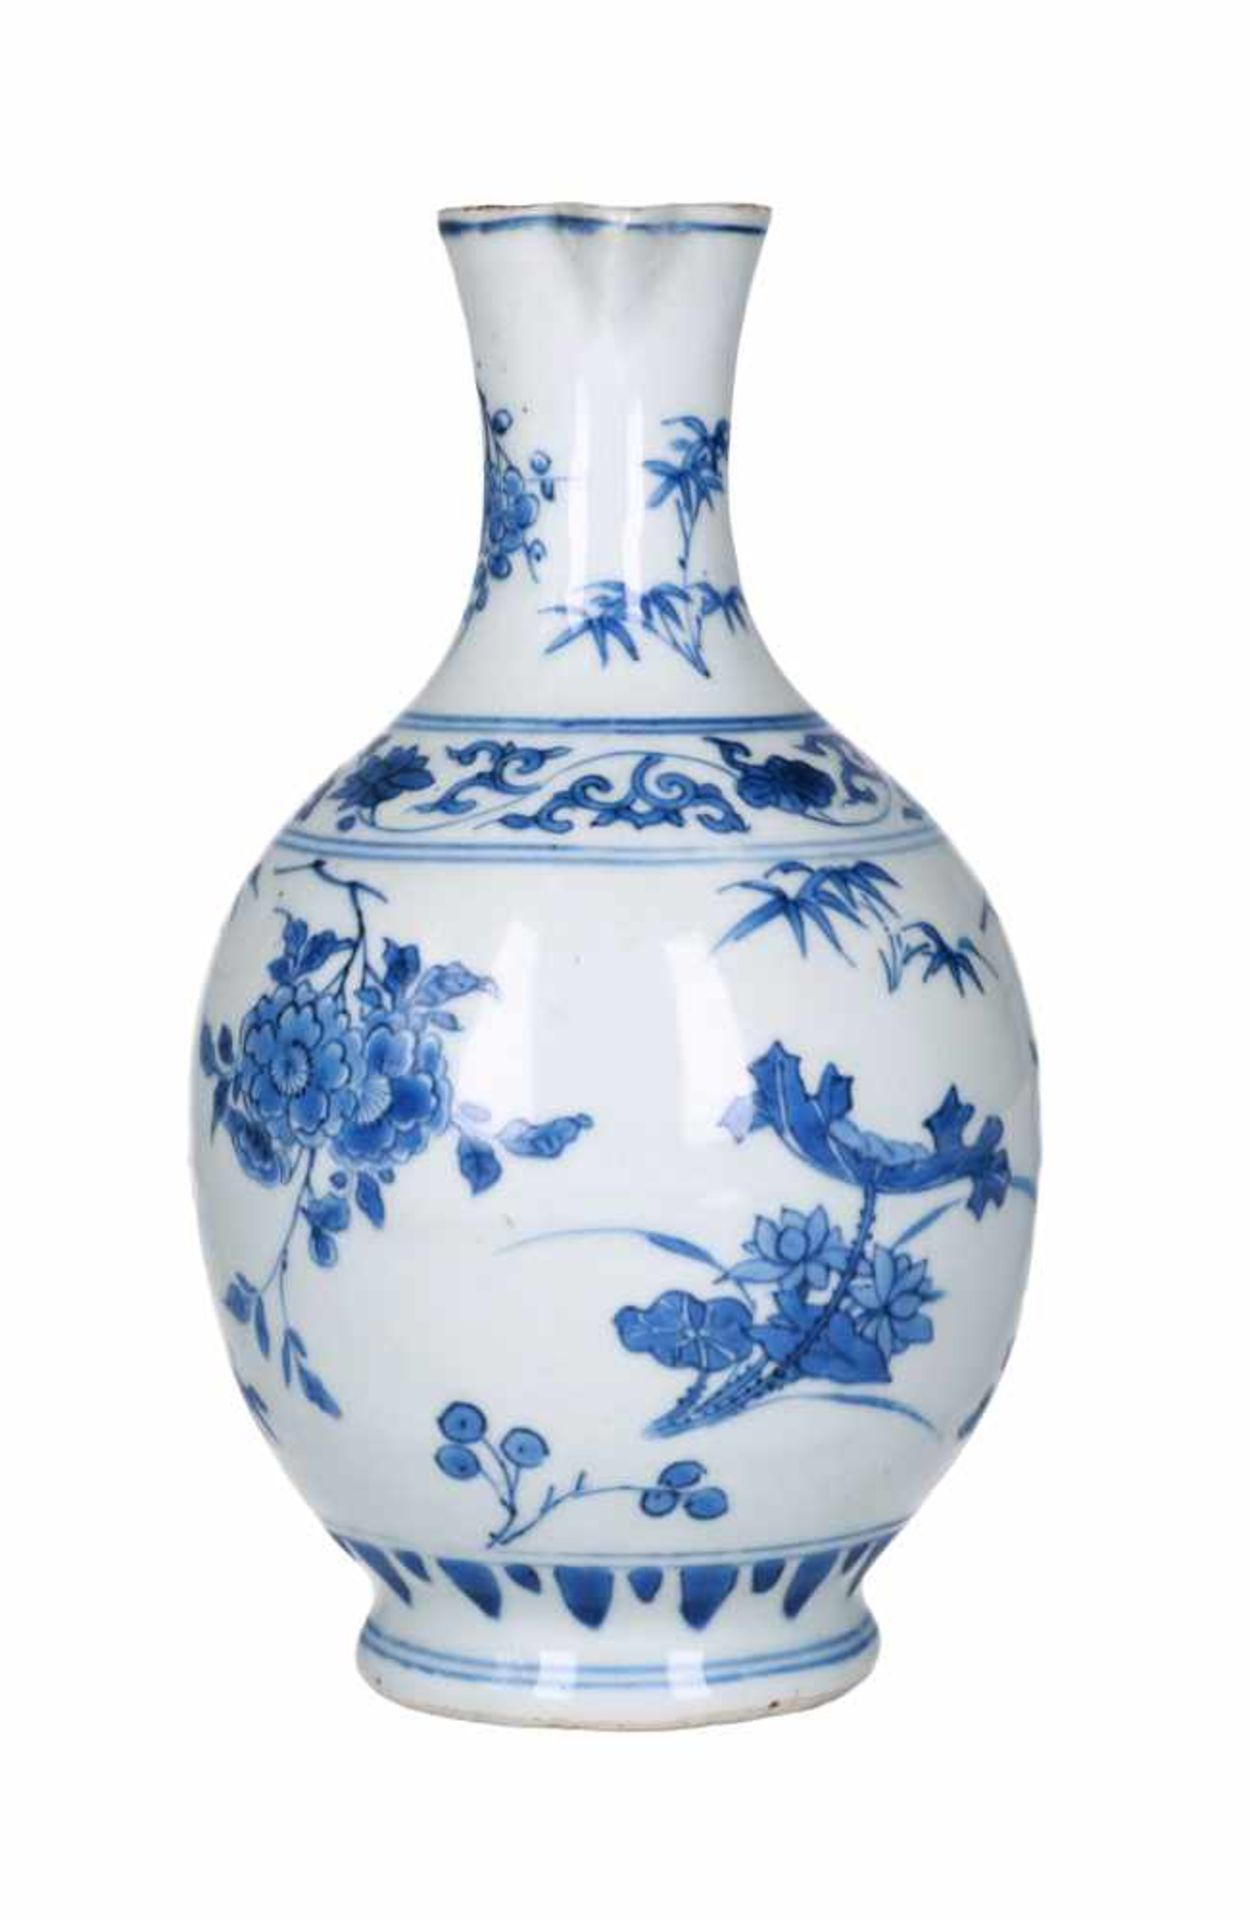 A blue and white porcelain jug with silver mounting, decorated with flowers. Unmarked. China, - Bild 4 aus 6